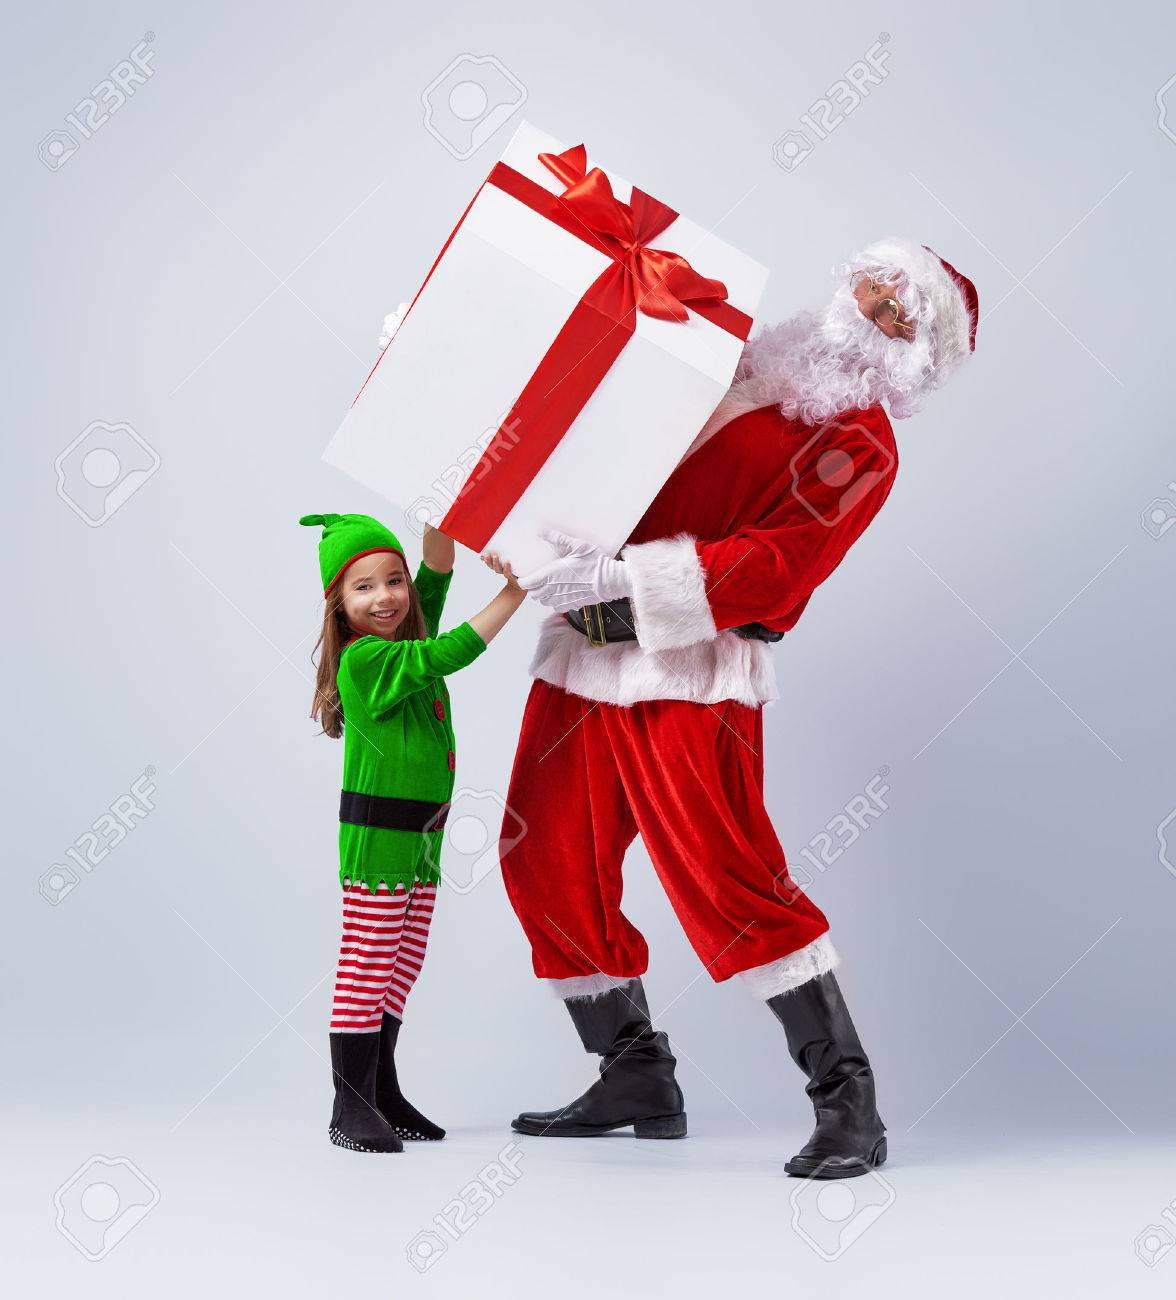 Funny santa and elf holding together a large christmas gift stock funny santa and elf holding together a large christmas gift stock photo 46636744 negle Image collections